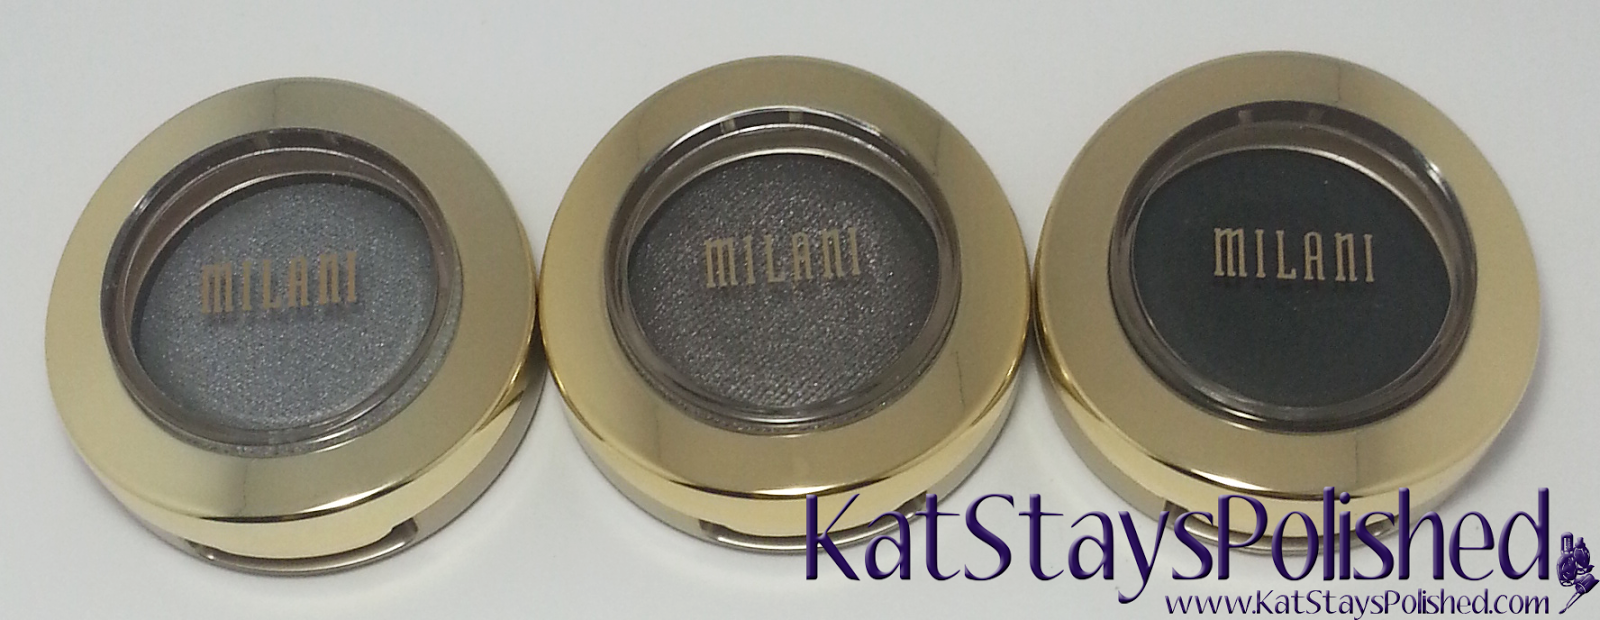 Milani Bella Eyes Gel Powder Eye Shadow - Gray - Charcoal - Black | Kat Stays Polished